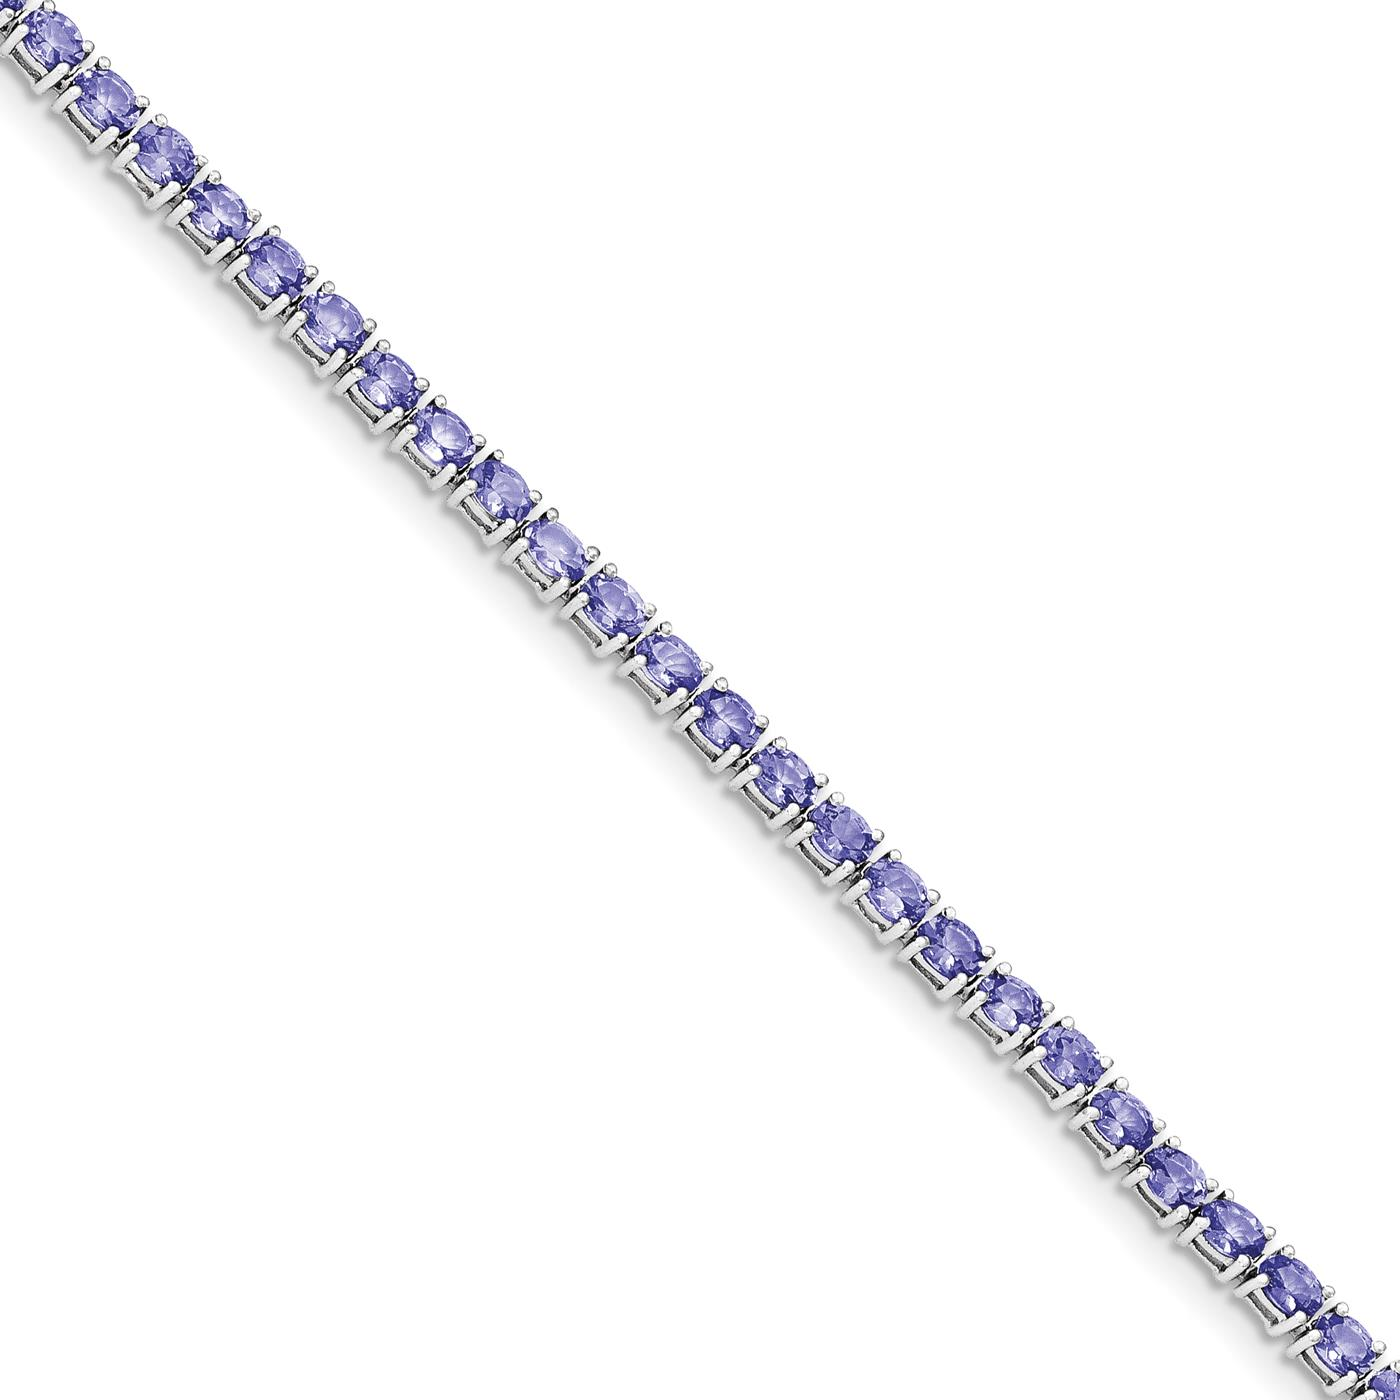 "Ladies 925 Sterling Silver Rhodium Plated Polished Oval Tanzanite Bracelet 7.5"" by Fusion Collections"